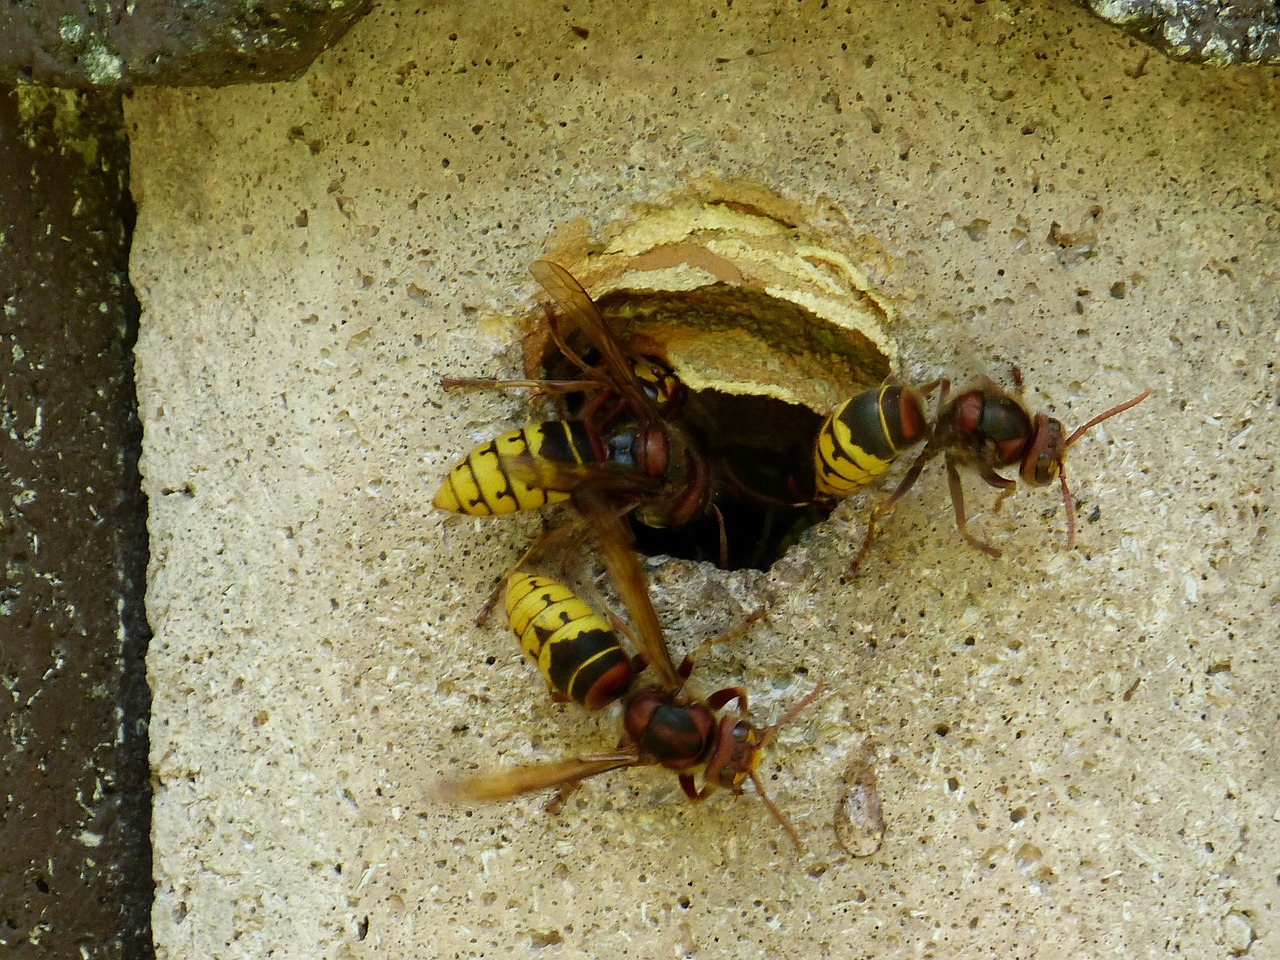 hornets vespa crabro animal free photo